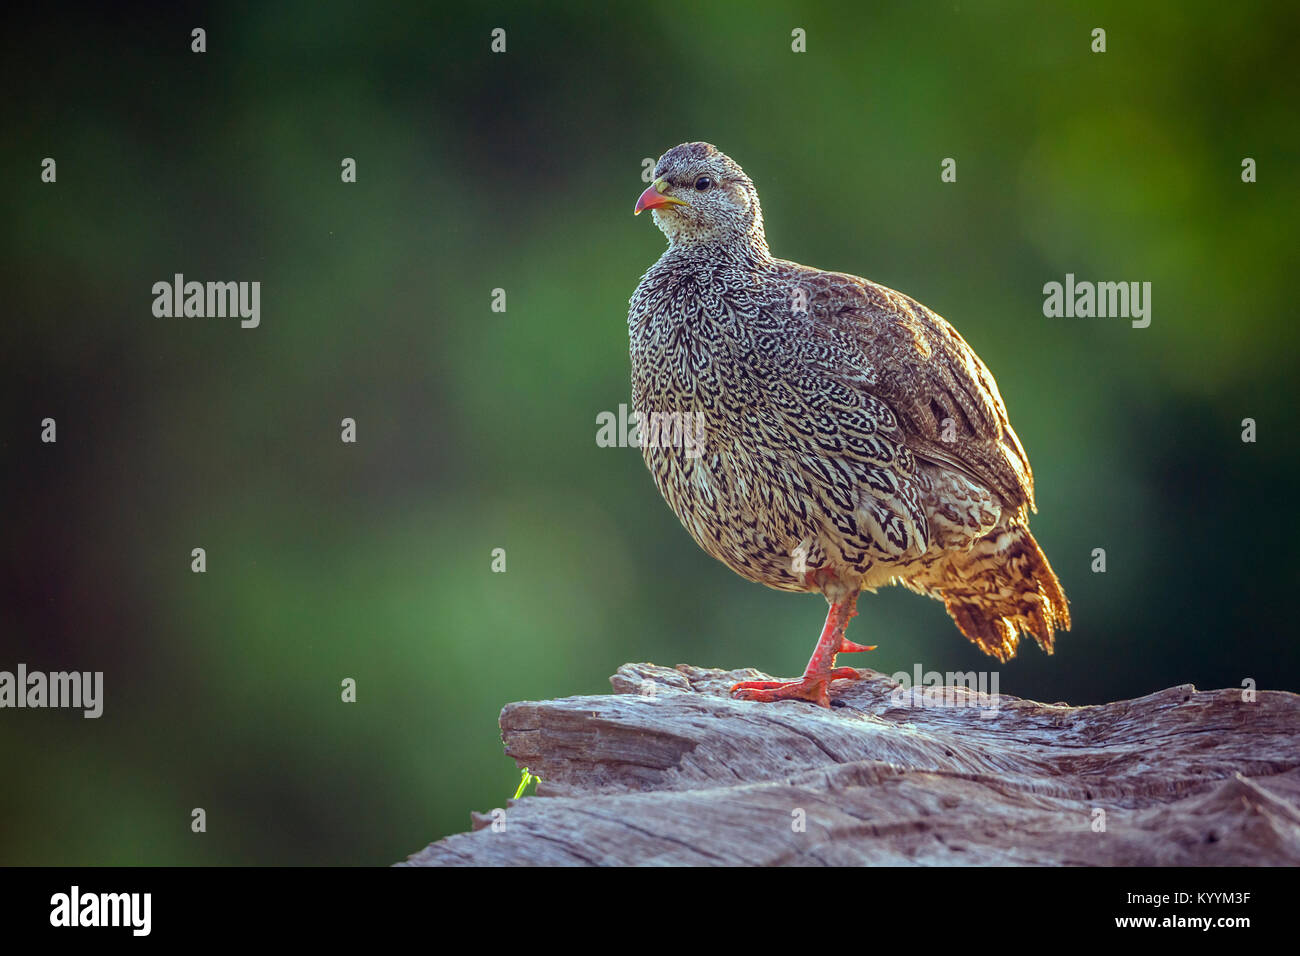 Natal francolin in Mapunguwe national park, South Africa ; Specie Pternistis natalensis family of Phasianidae - Stock Image